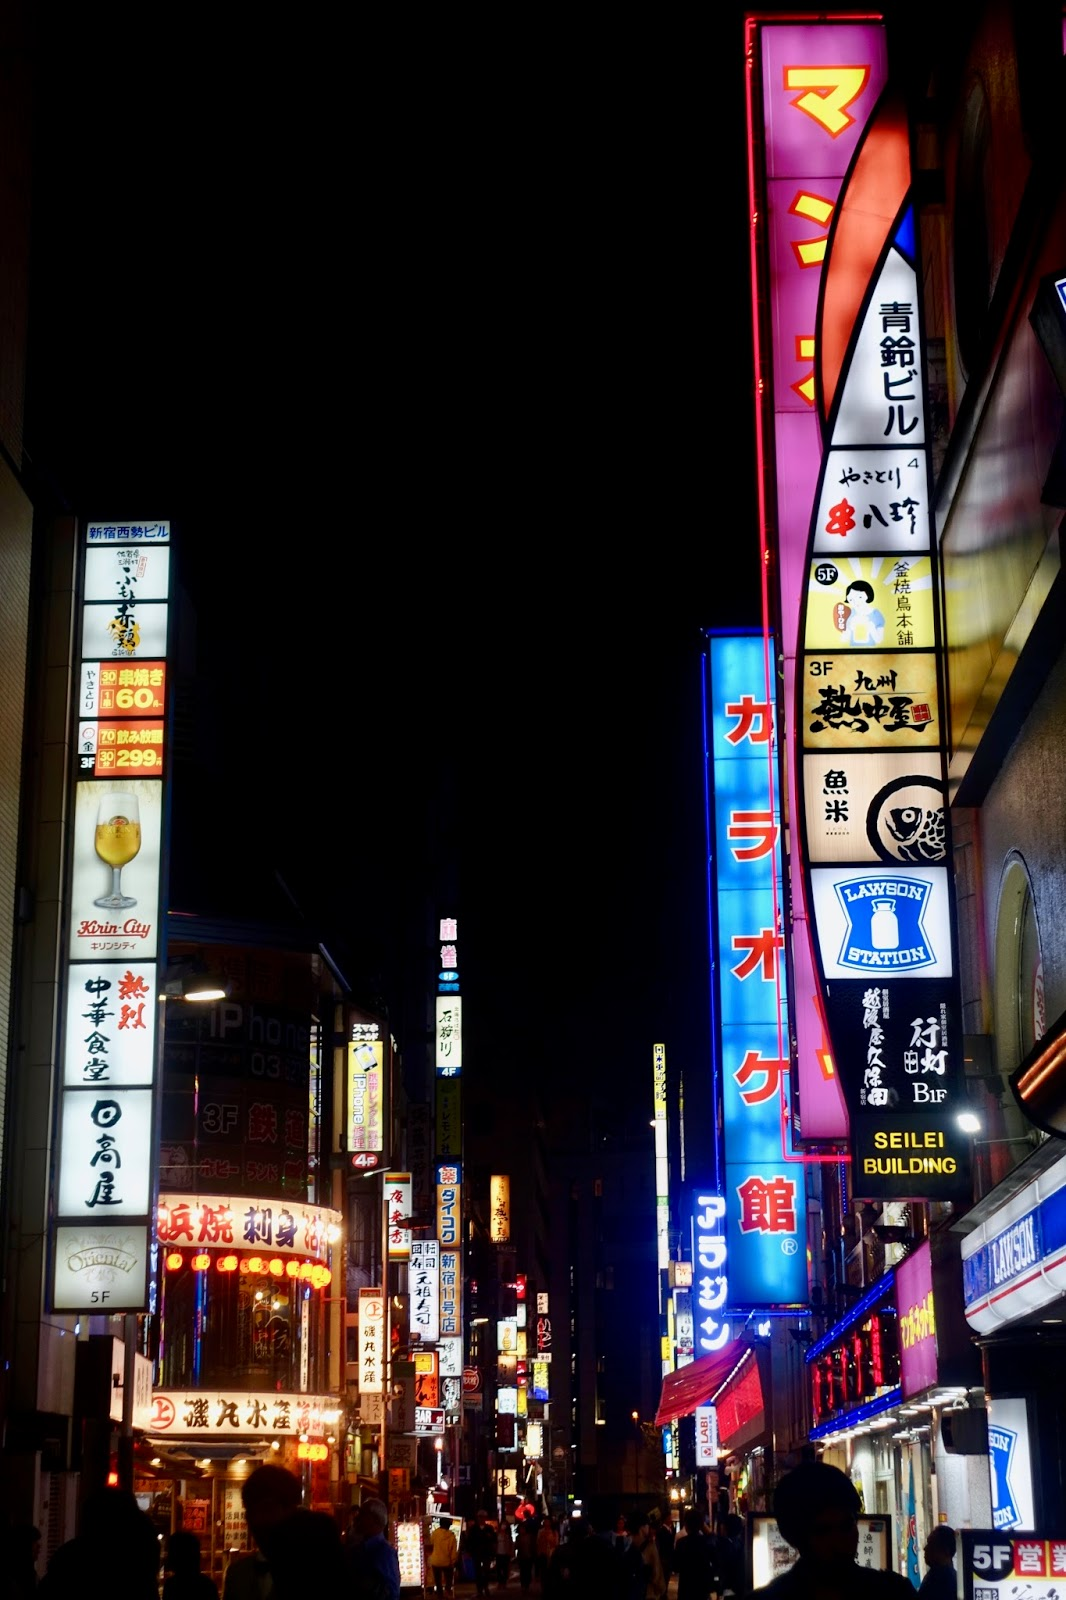 SHINJUKU AT NIGHT JAPAN